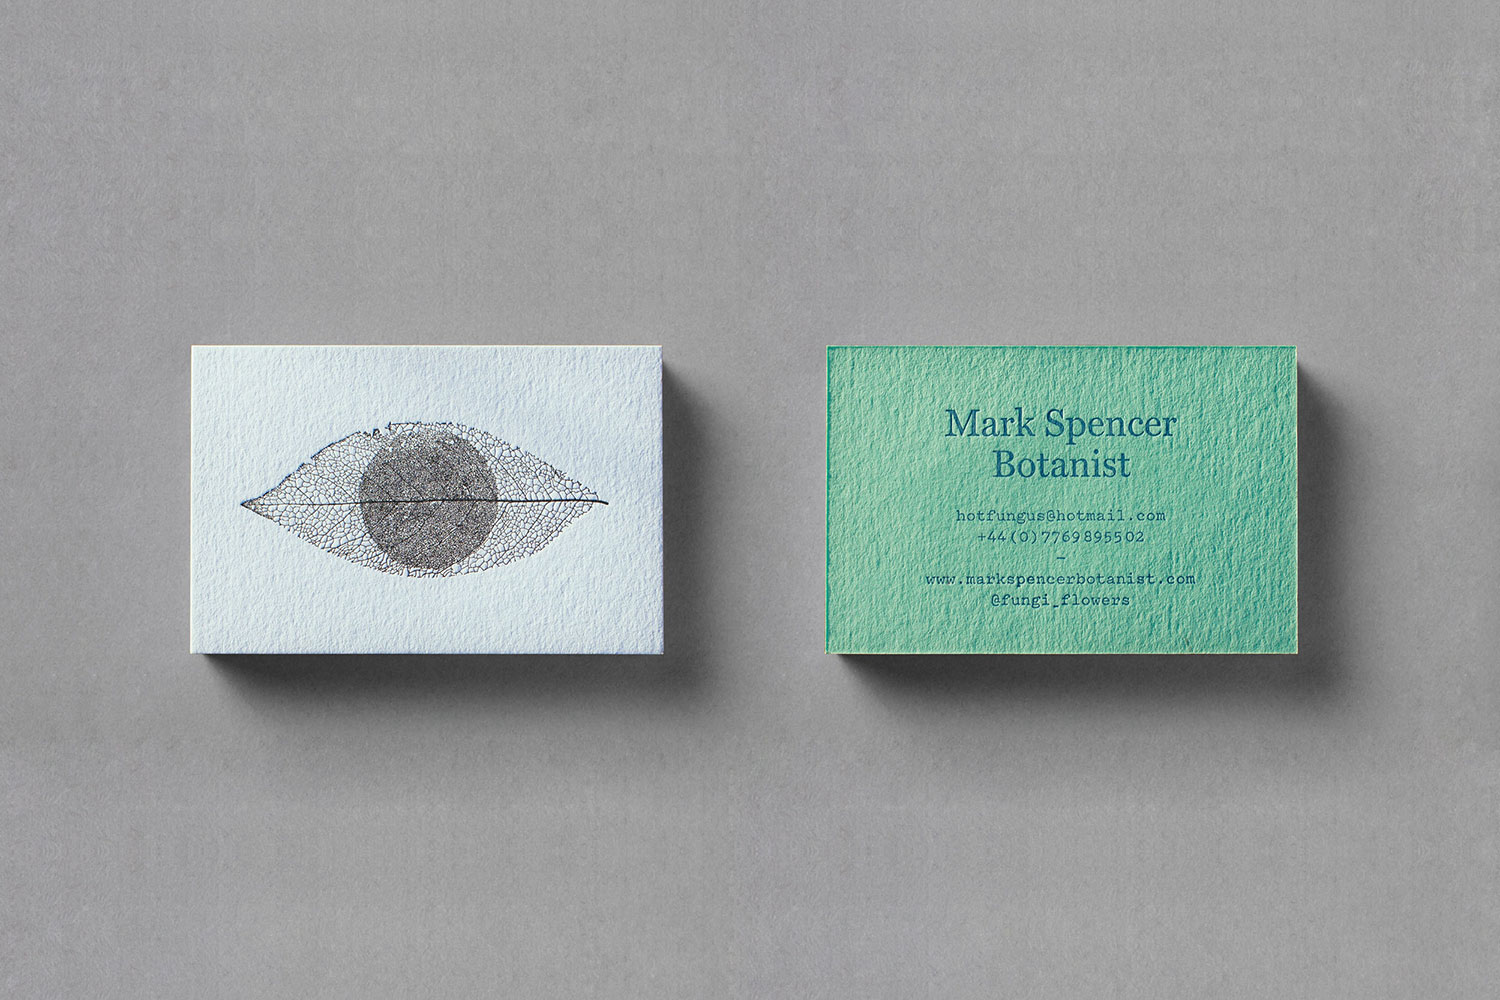 Mark Spencer forensic botanist cards